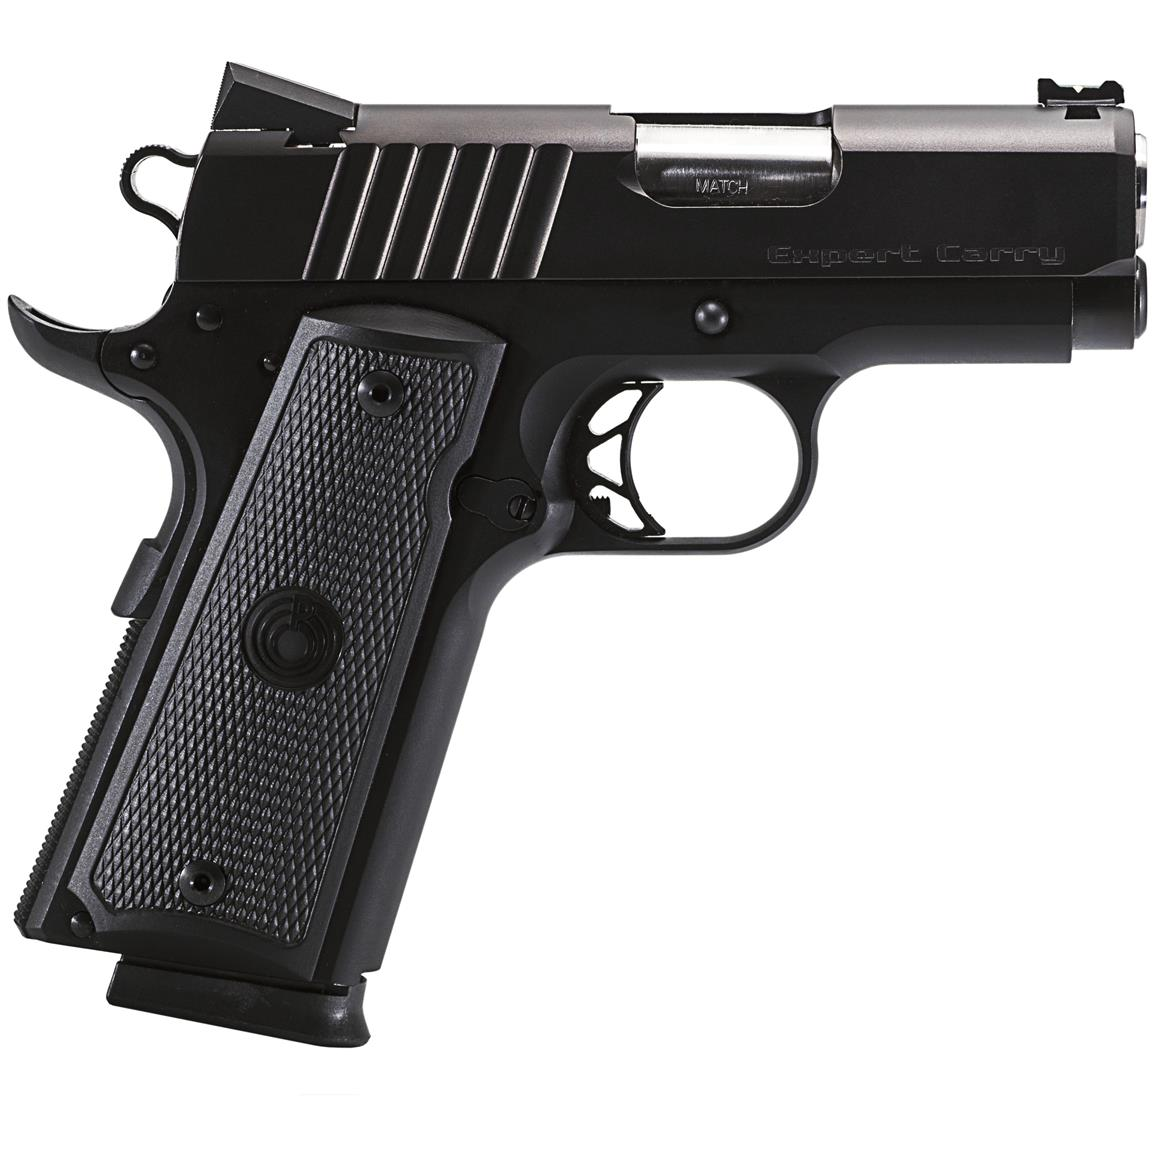 "PARA USA Expert Carry 1911 Pistol, Semi-automatic, .45 ACP, 96745, 770752967455, 3"" Barrel"